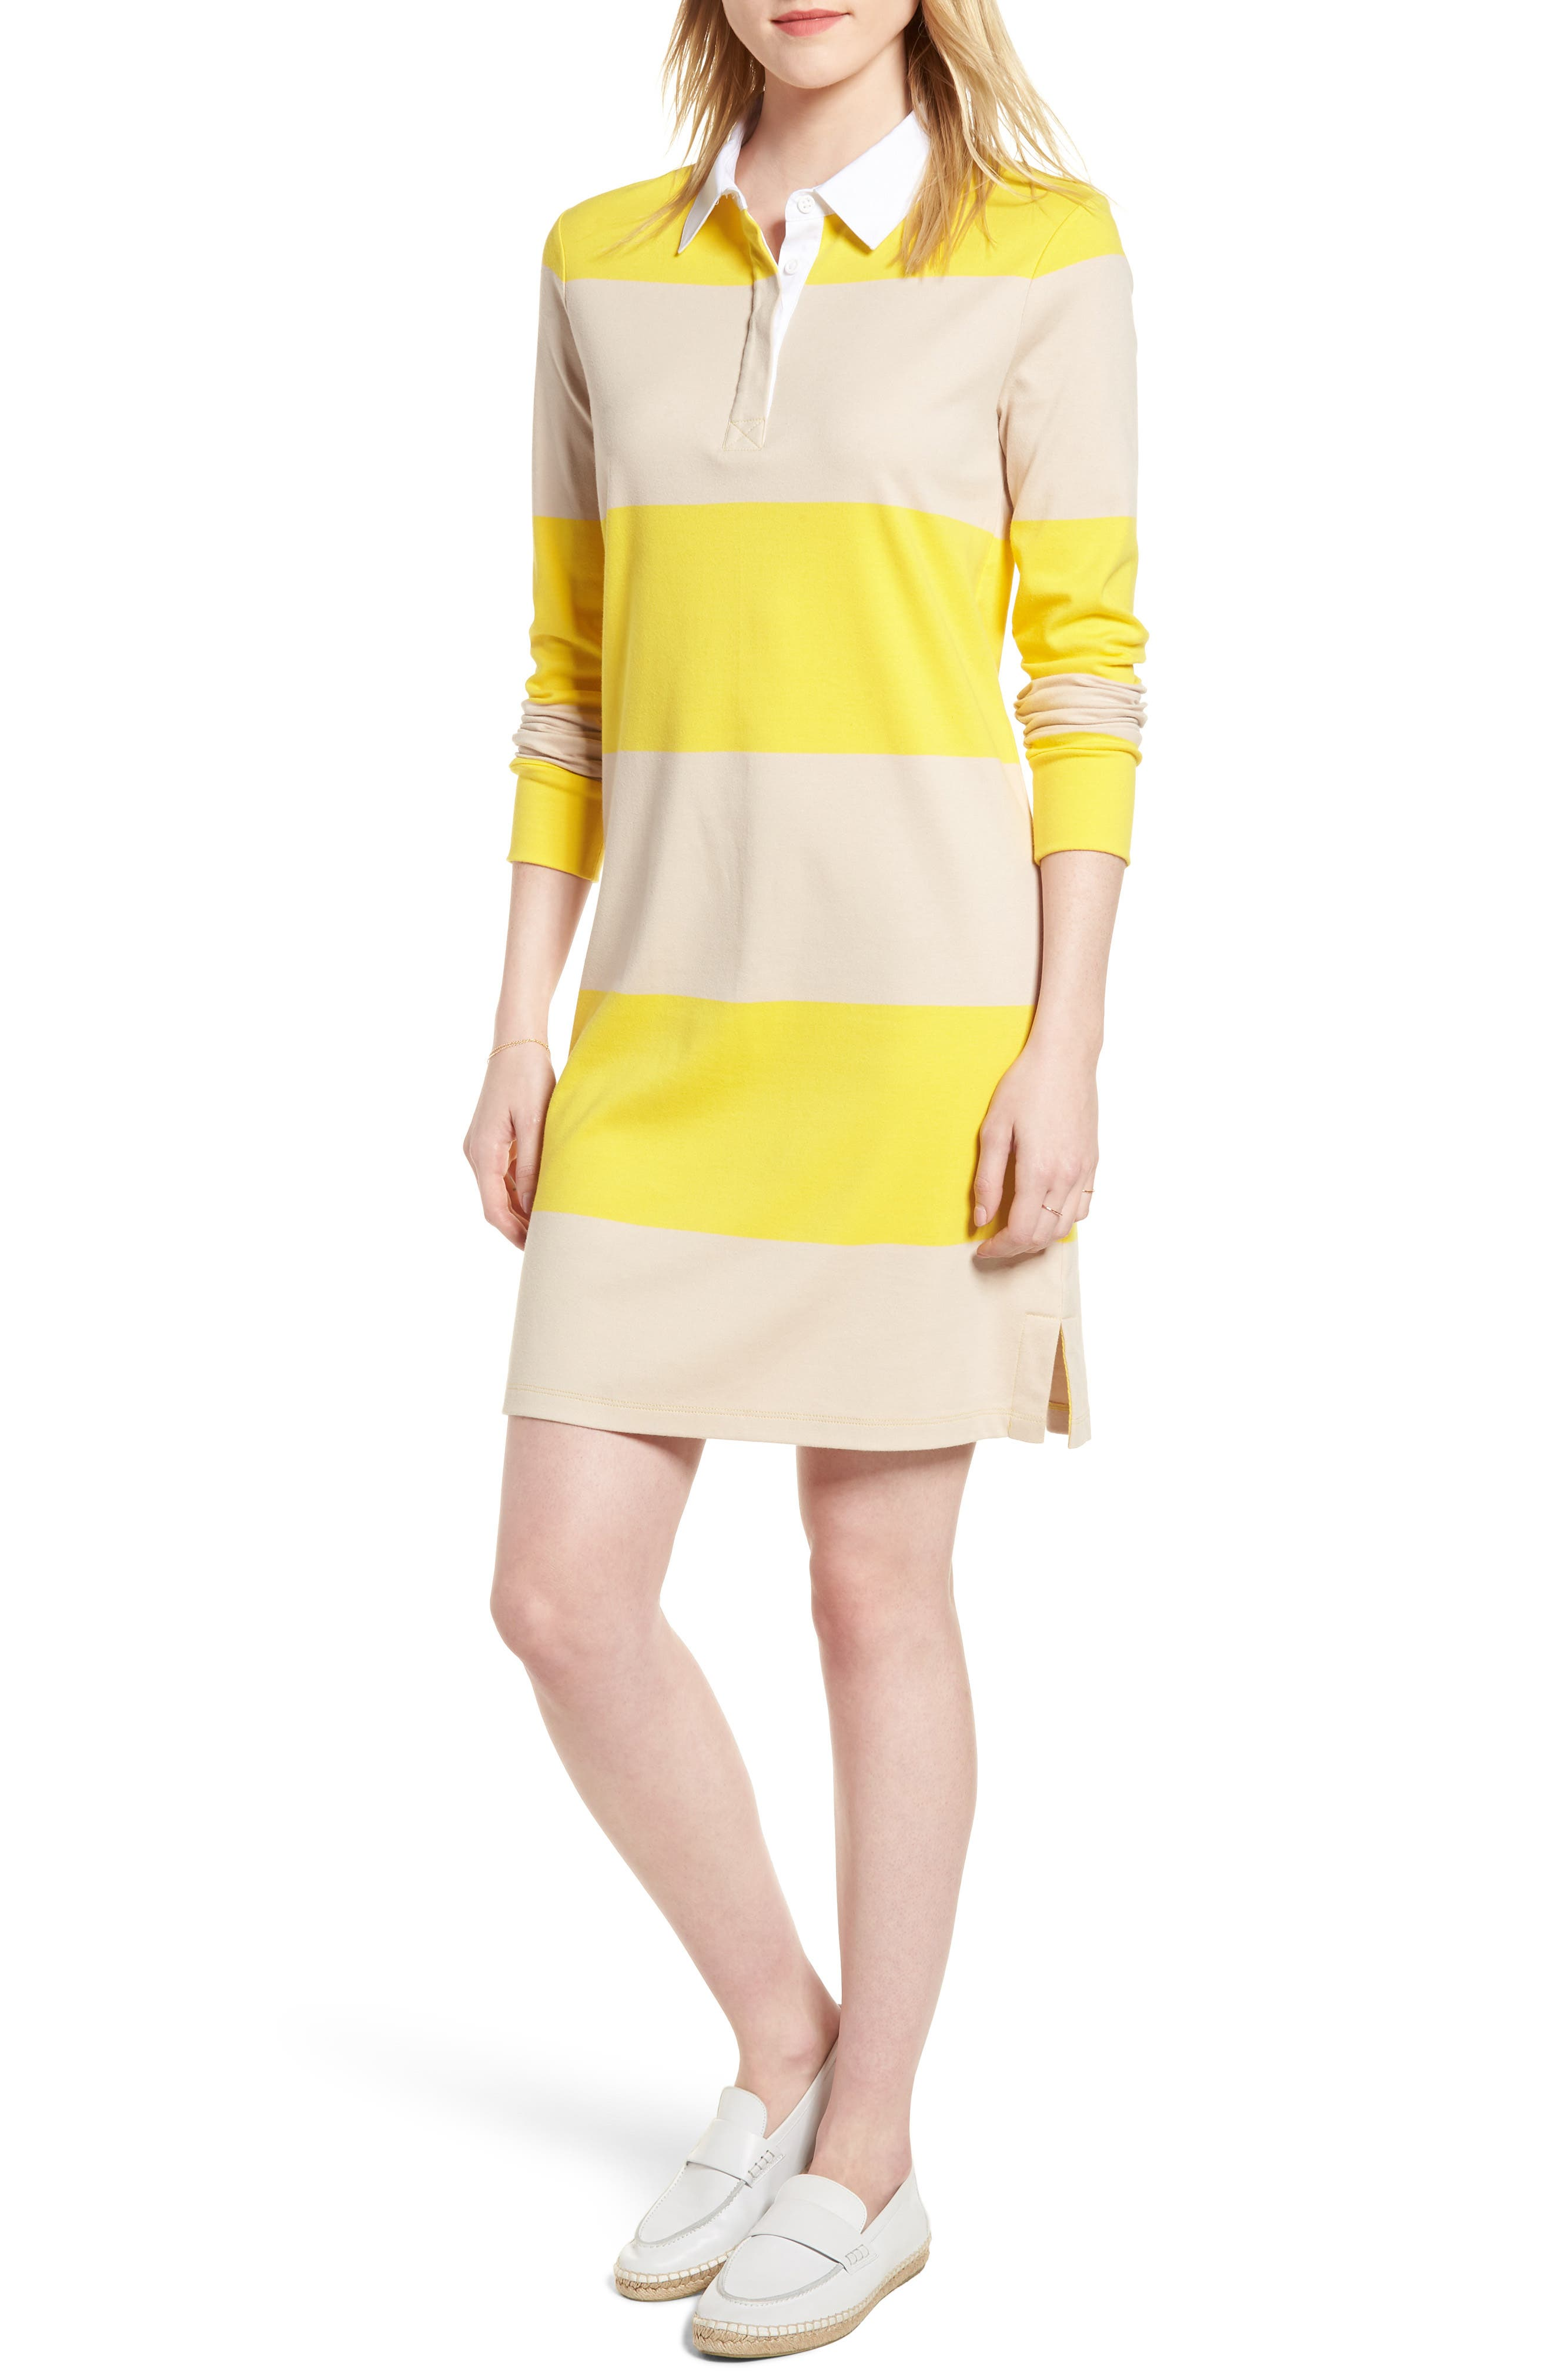 Cotton Rugby Dress,                             Main thumbnail 1, color,                             Yellow- Beige Stripe